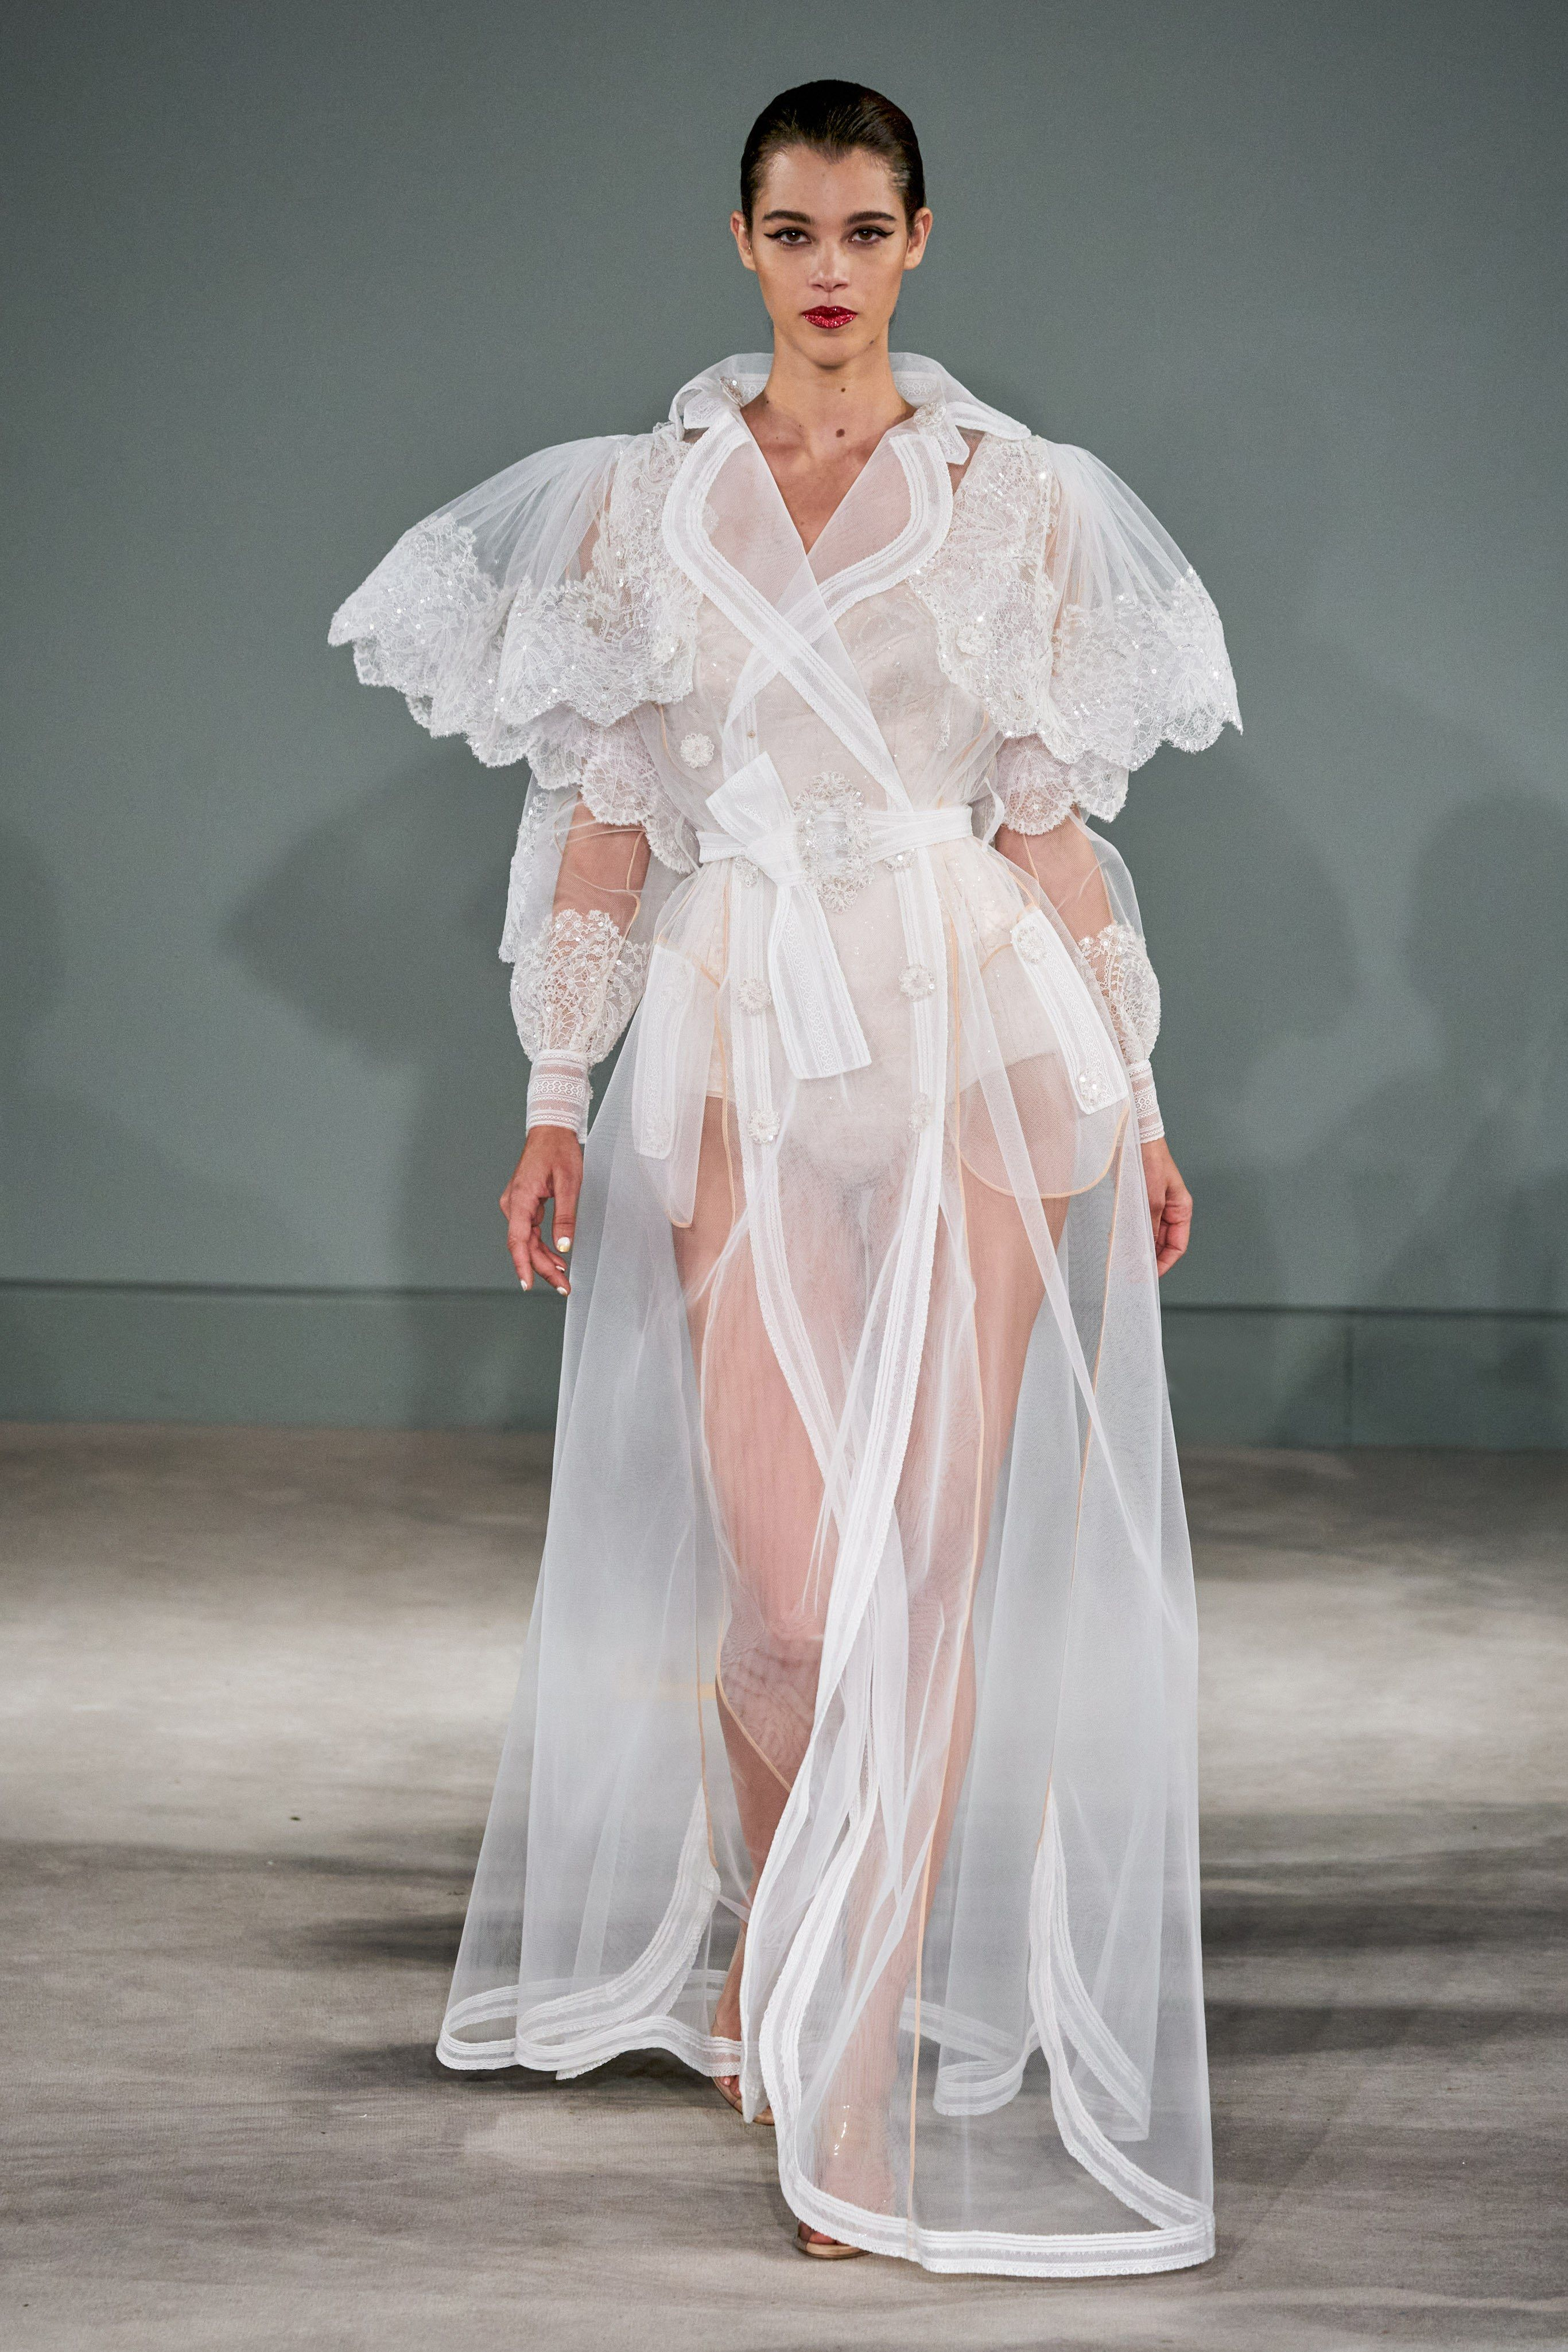 Alexis Mabille Spring 20 Couture Fashion Show   Spring couture ...